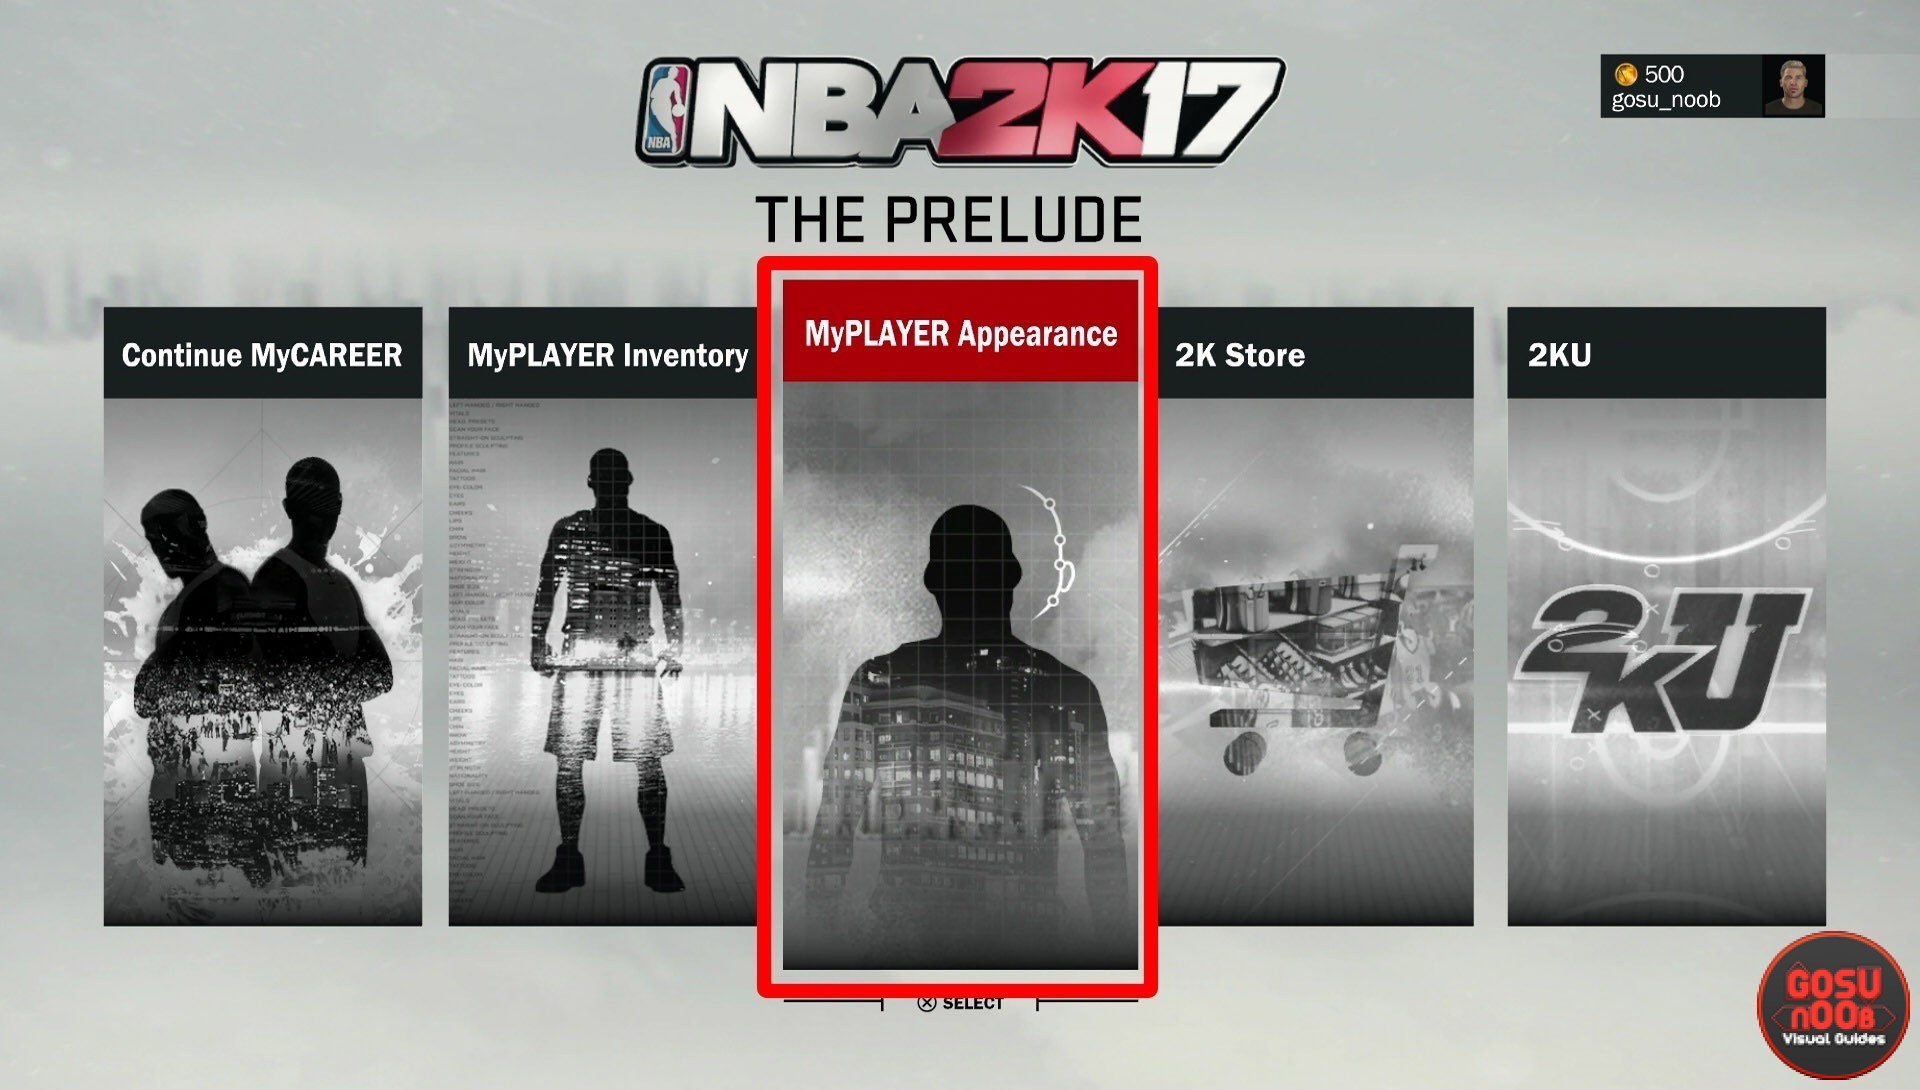 How to Equip Tattoos & Accessories in NBA 2K17